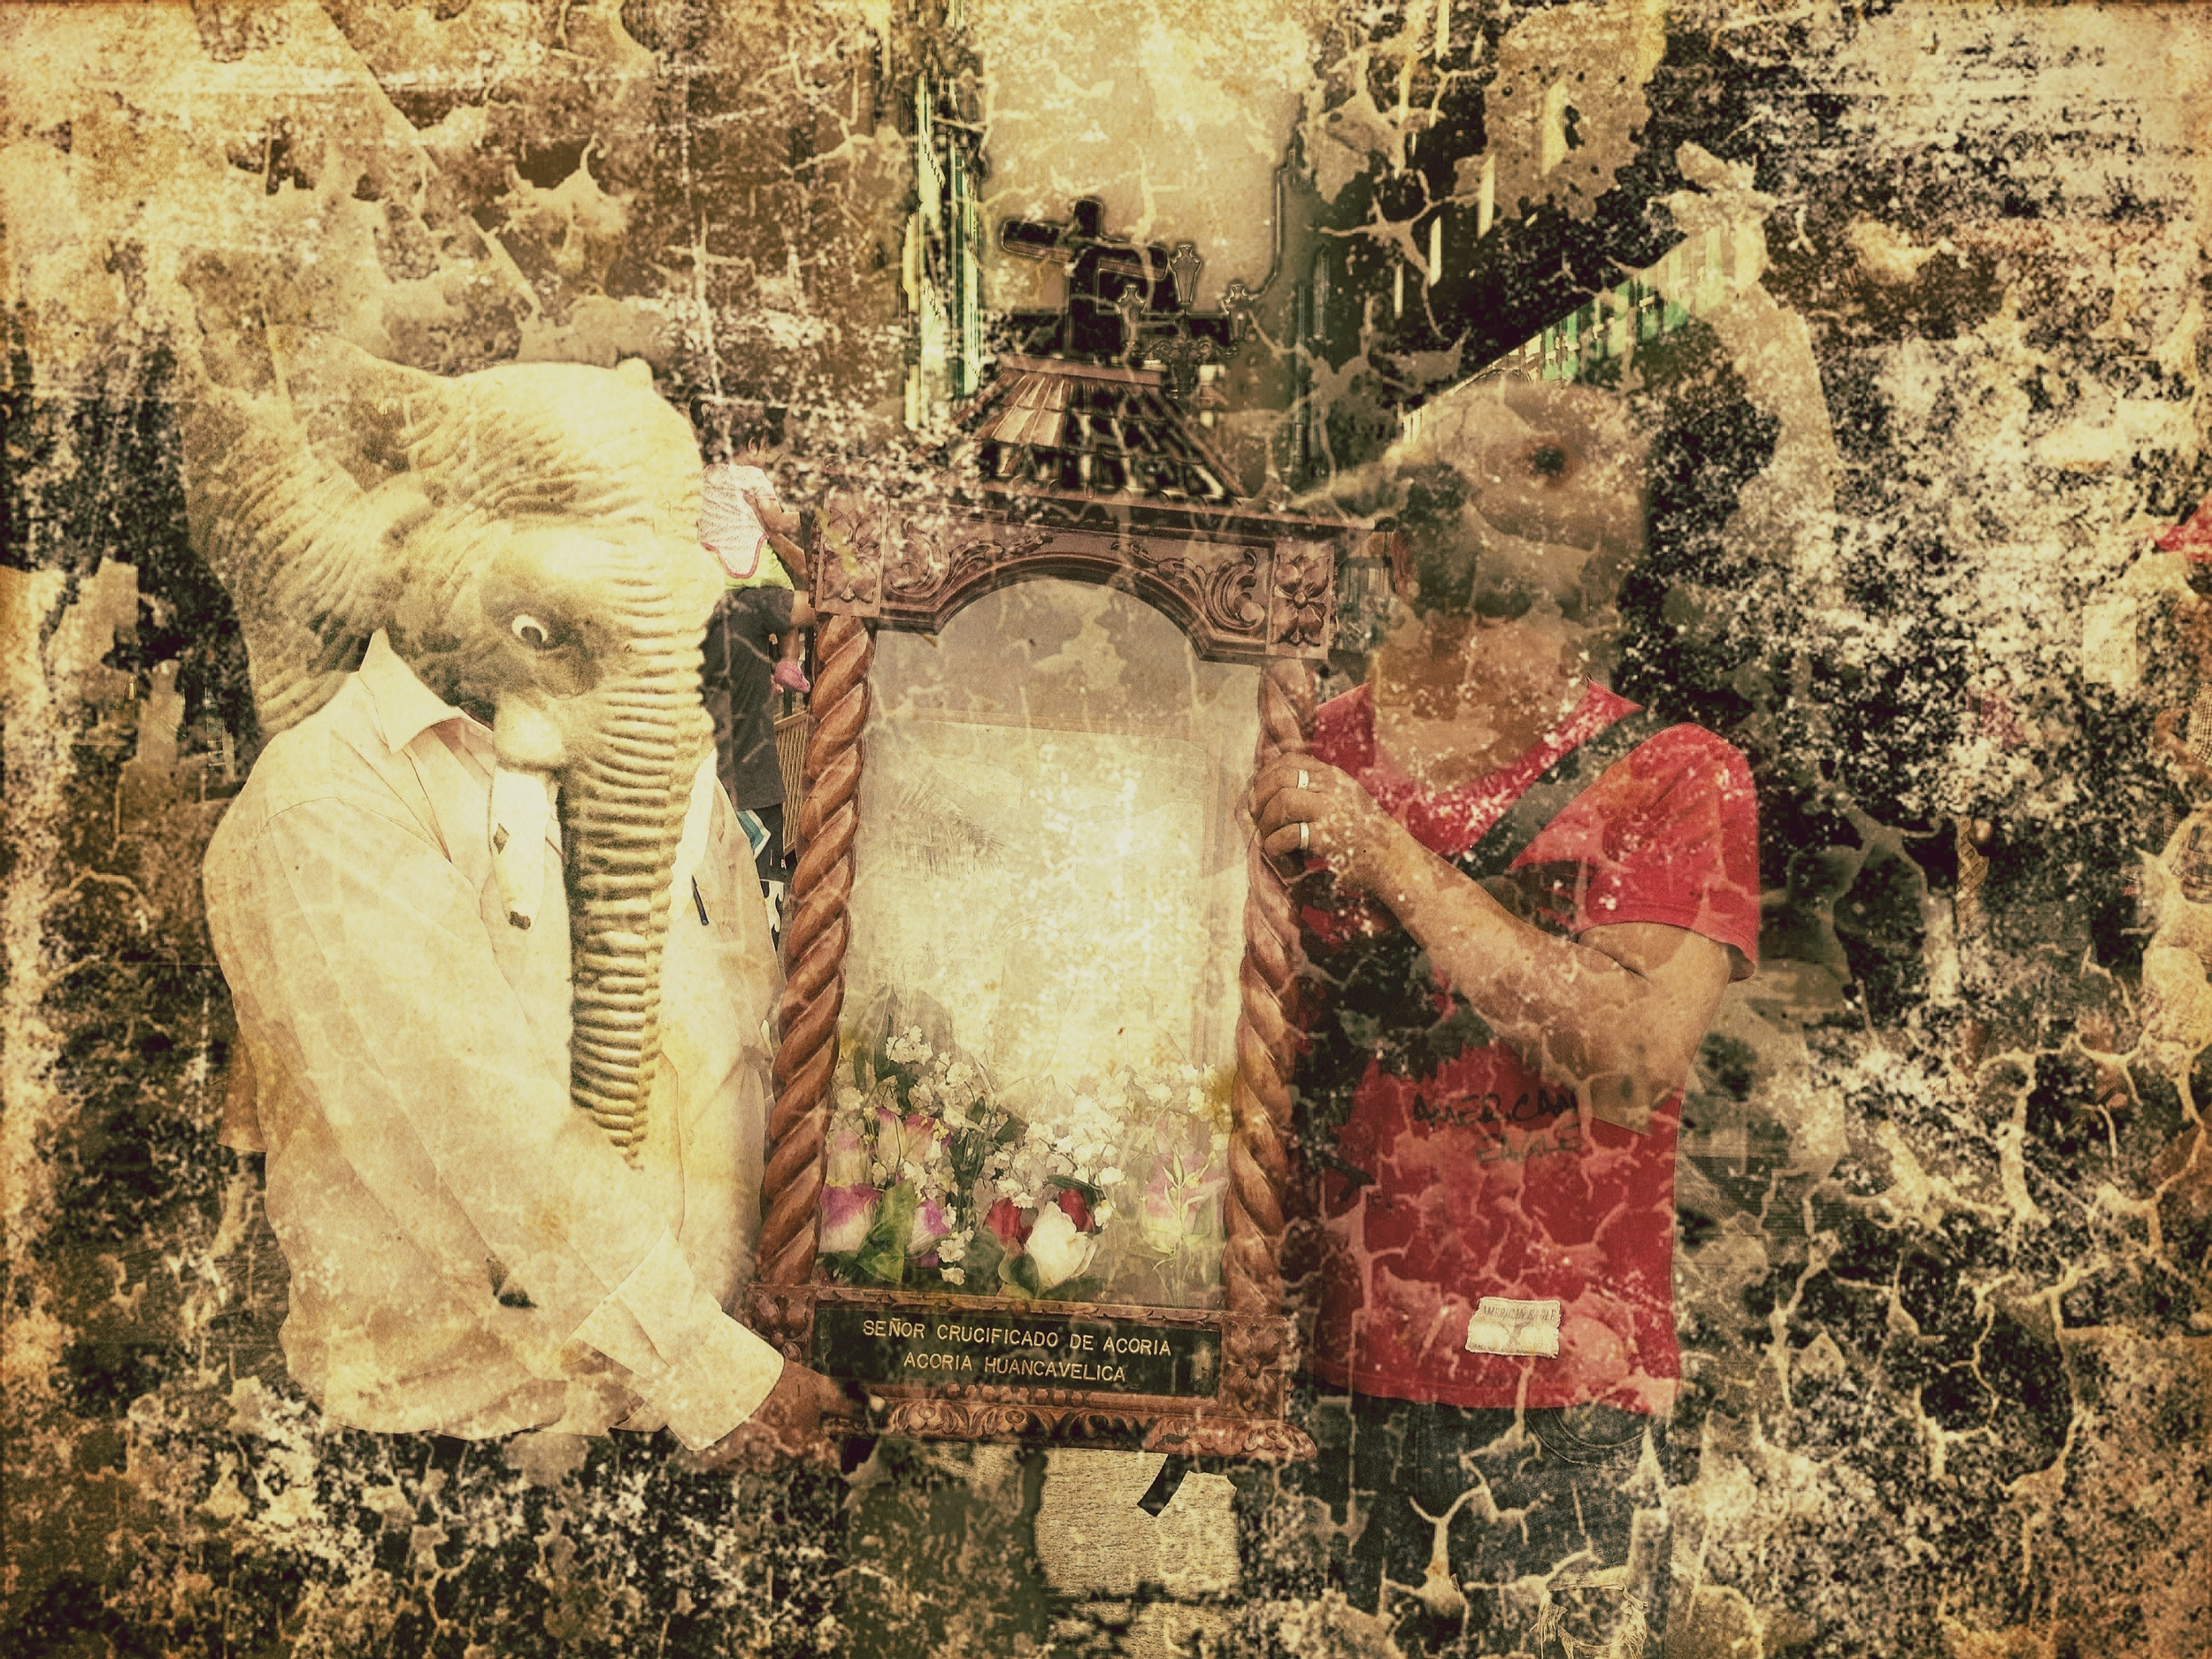 The Elephant and the Dove brought the image of their patron saint to the main square so that others worship Him